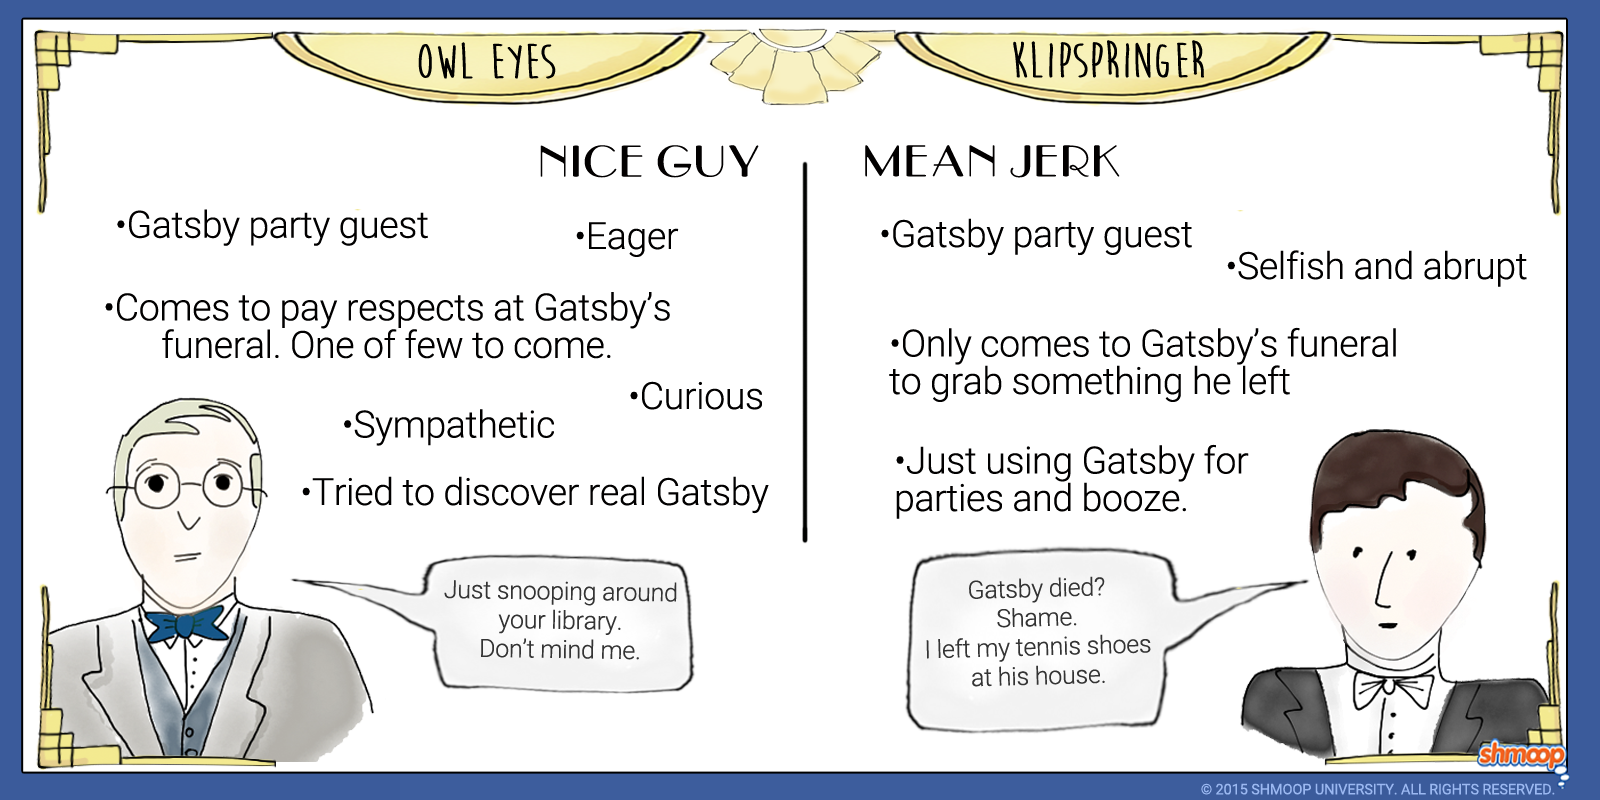 owl eyes and klipspringer in the great gatsby click the character infographic to